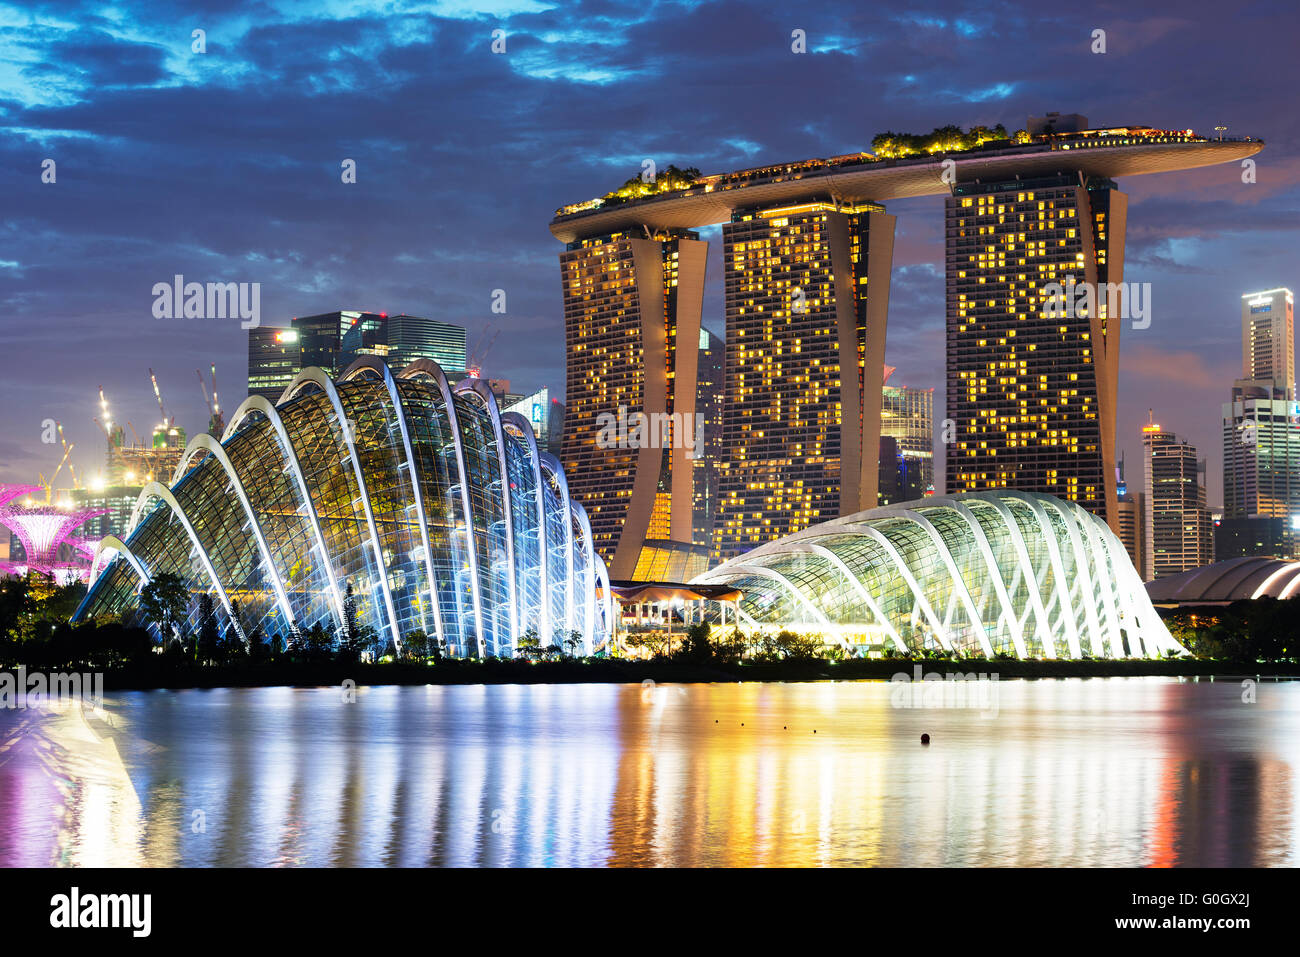 South East Asia, Singapore, Gardens by the Bay, Cloud Forest, Flower Dome, Marina Bay Sands Hotel and Casino Stock Photo